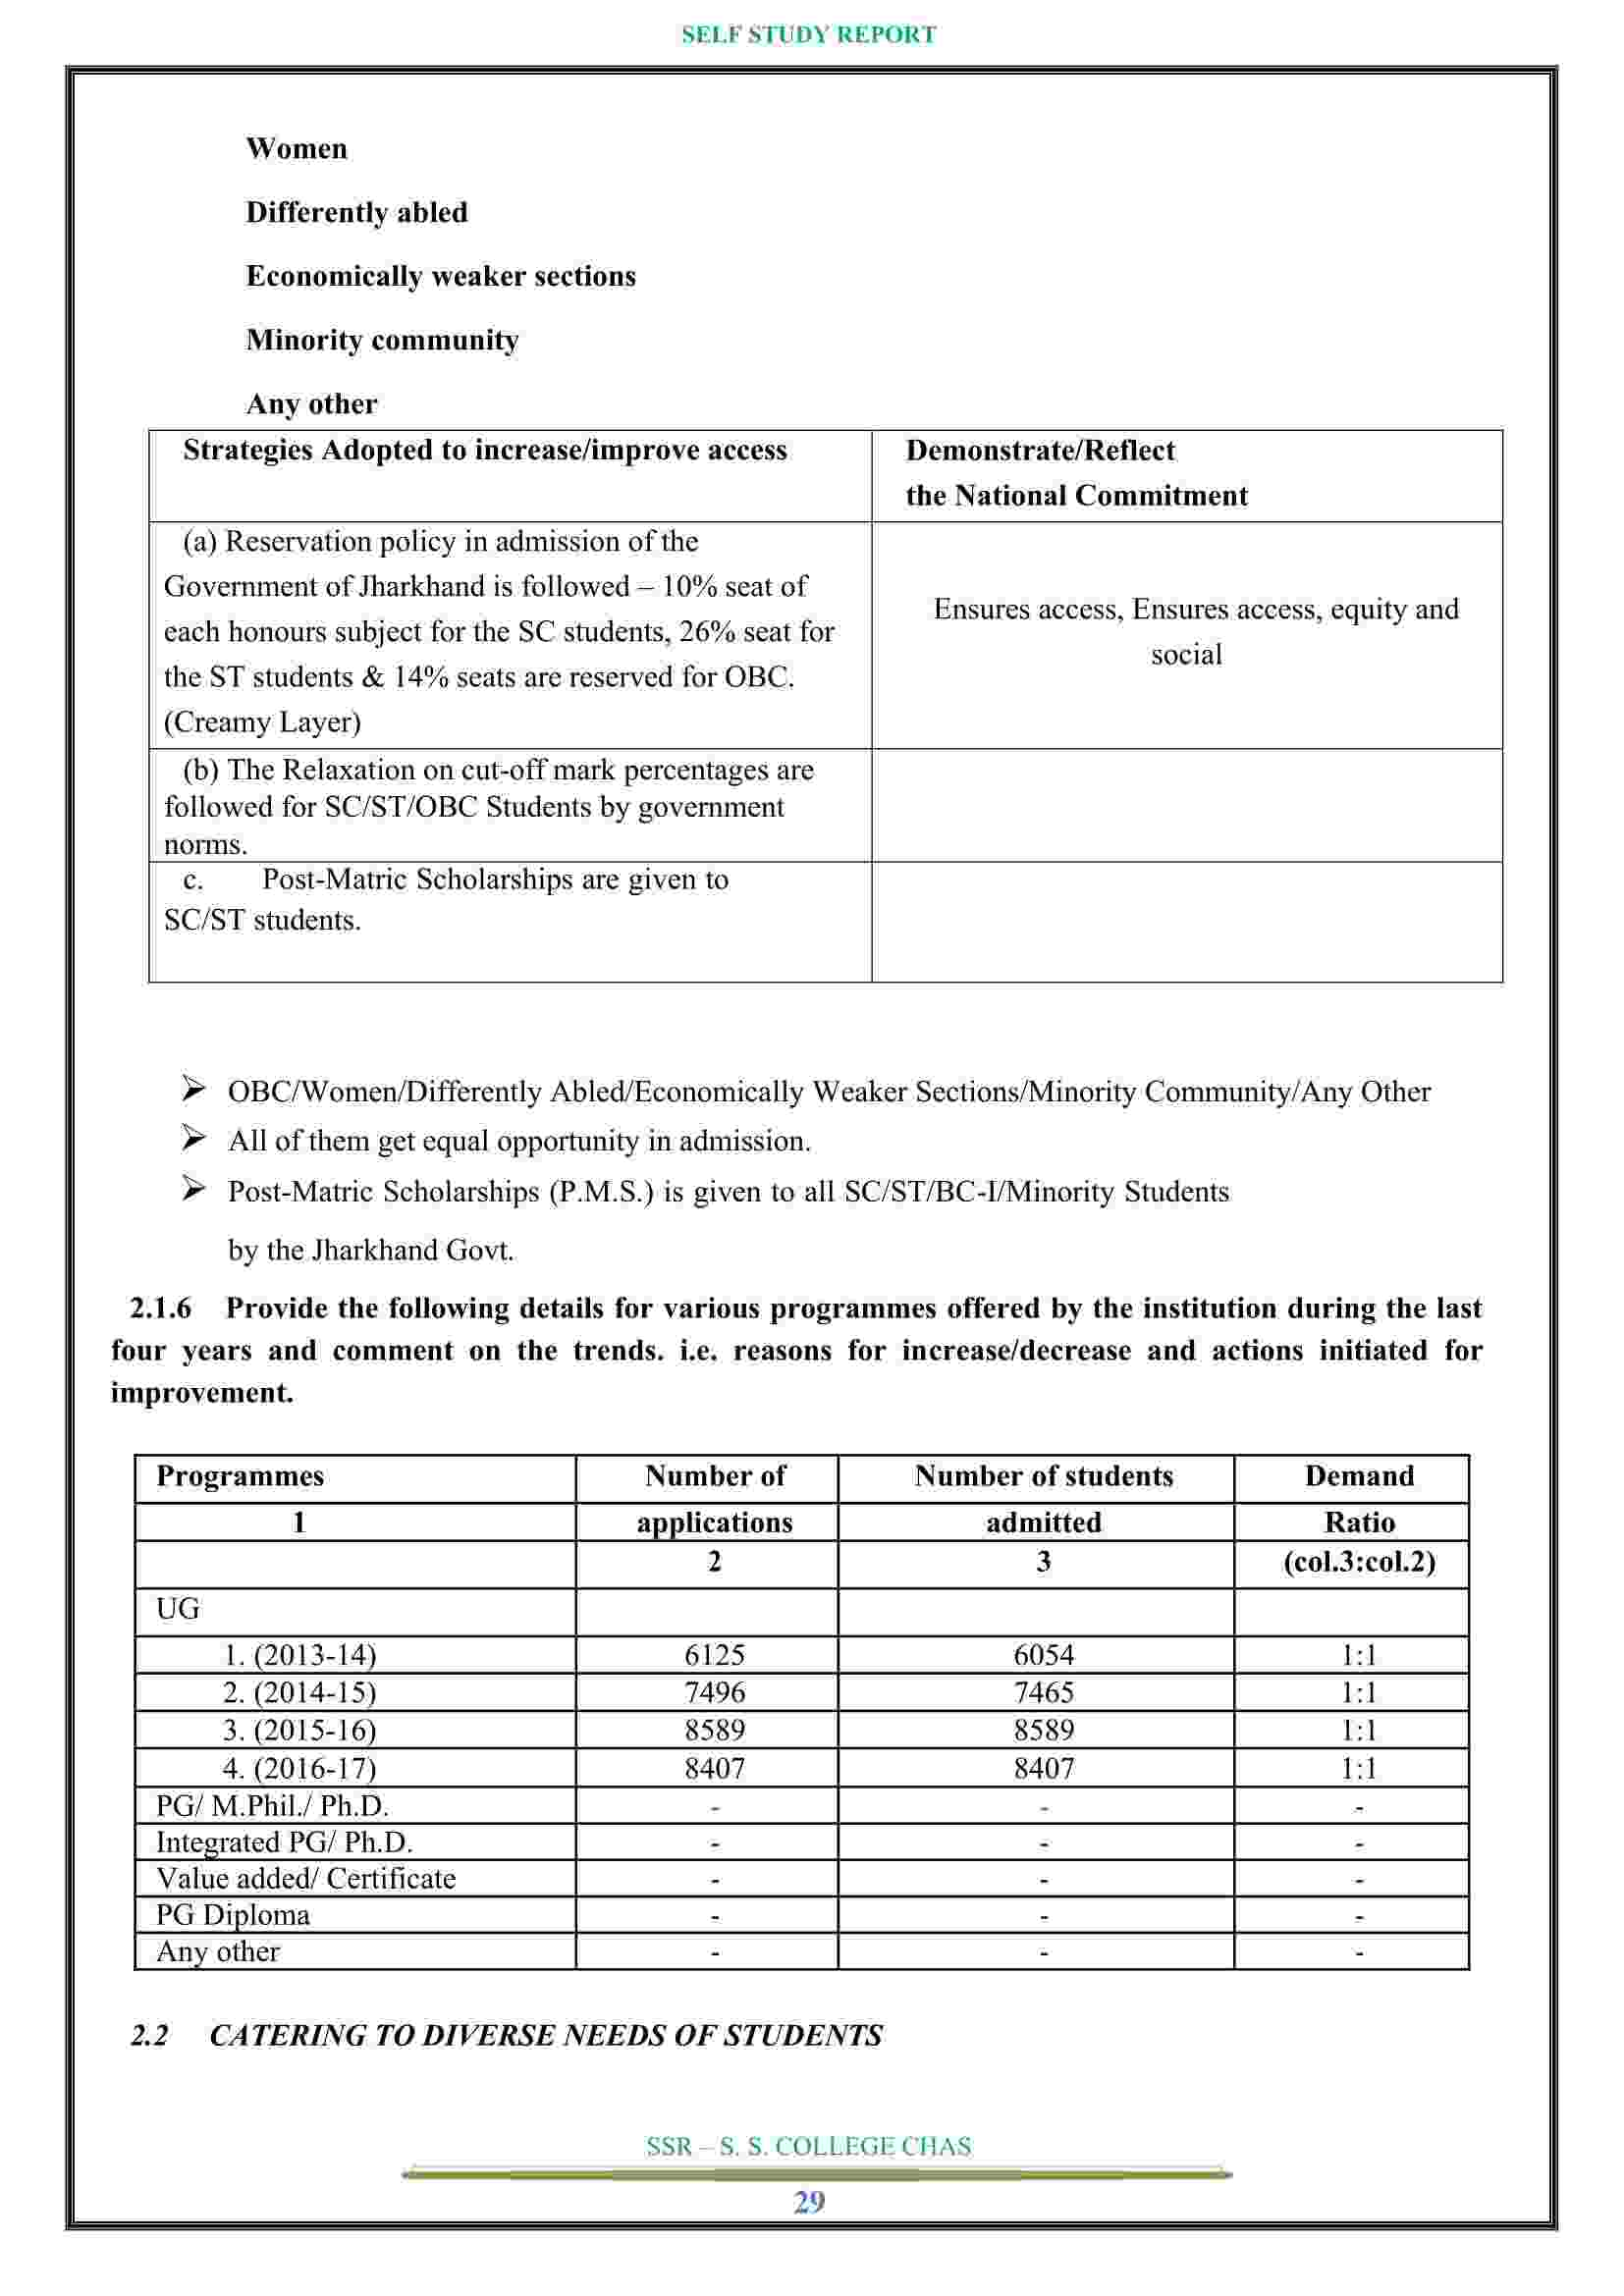 SSR SS College Chas, Bokaro new one-029-compressed